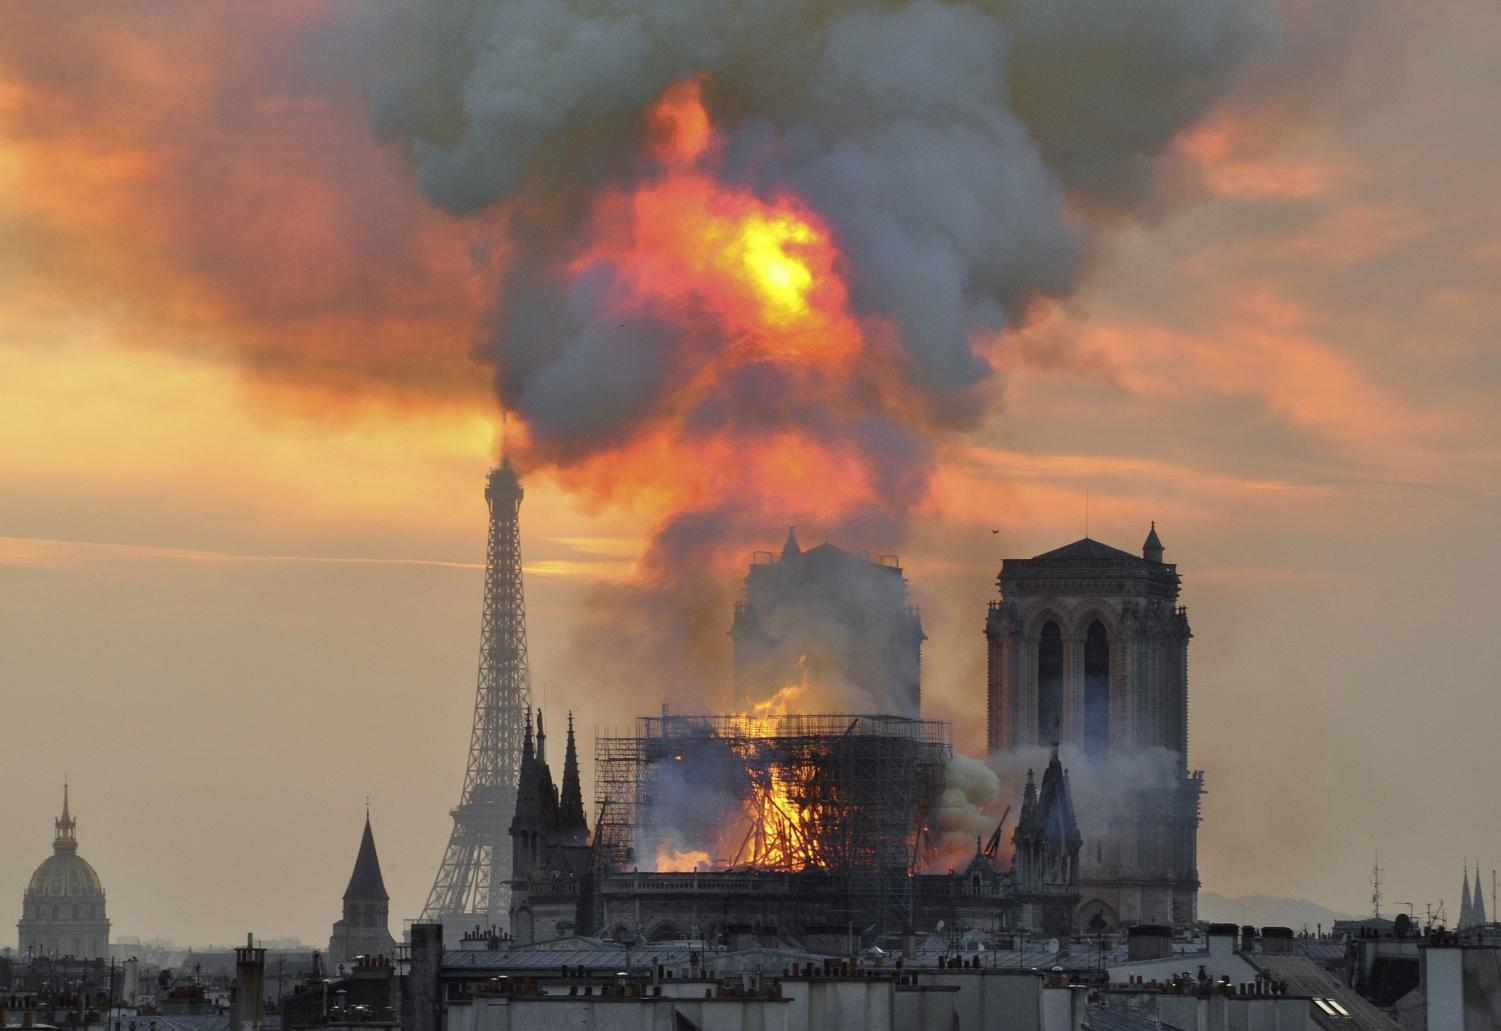 The significantly historical Notre Dame up in flames as it was caused by an unknown source.